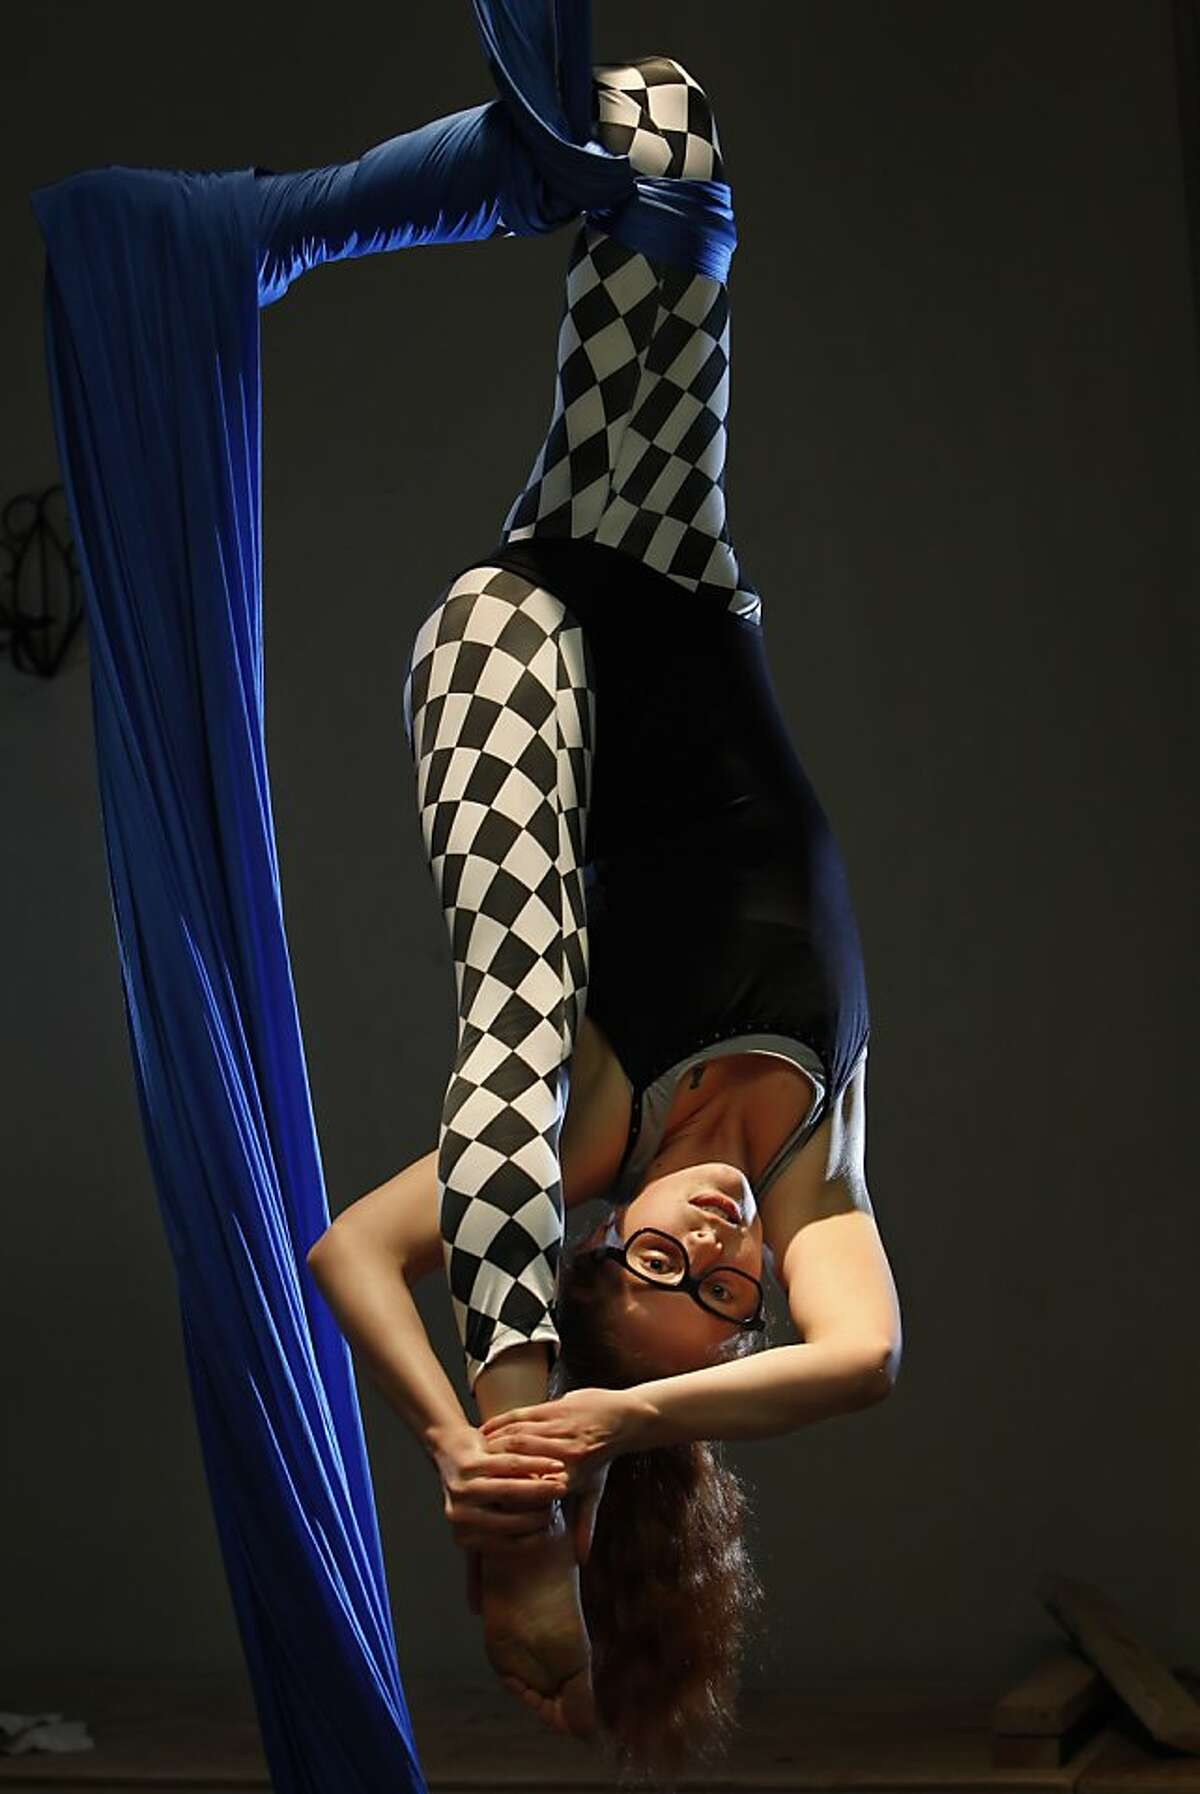 Bunny Zlotnik performs on aerial fabric during rehearsal of the Vespertine Circus in Oakland, Calif., on Tuesday, April 30, 2013. Oakland has become a major hub for circus arts. People come from all over the world to study in haphazard, organic